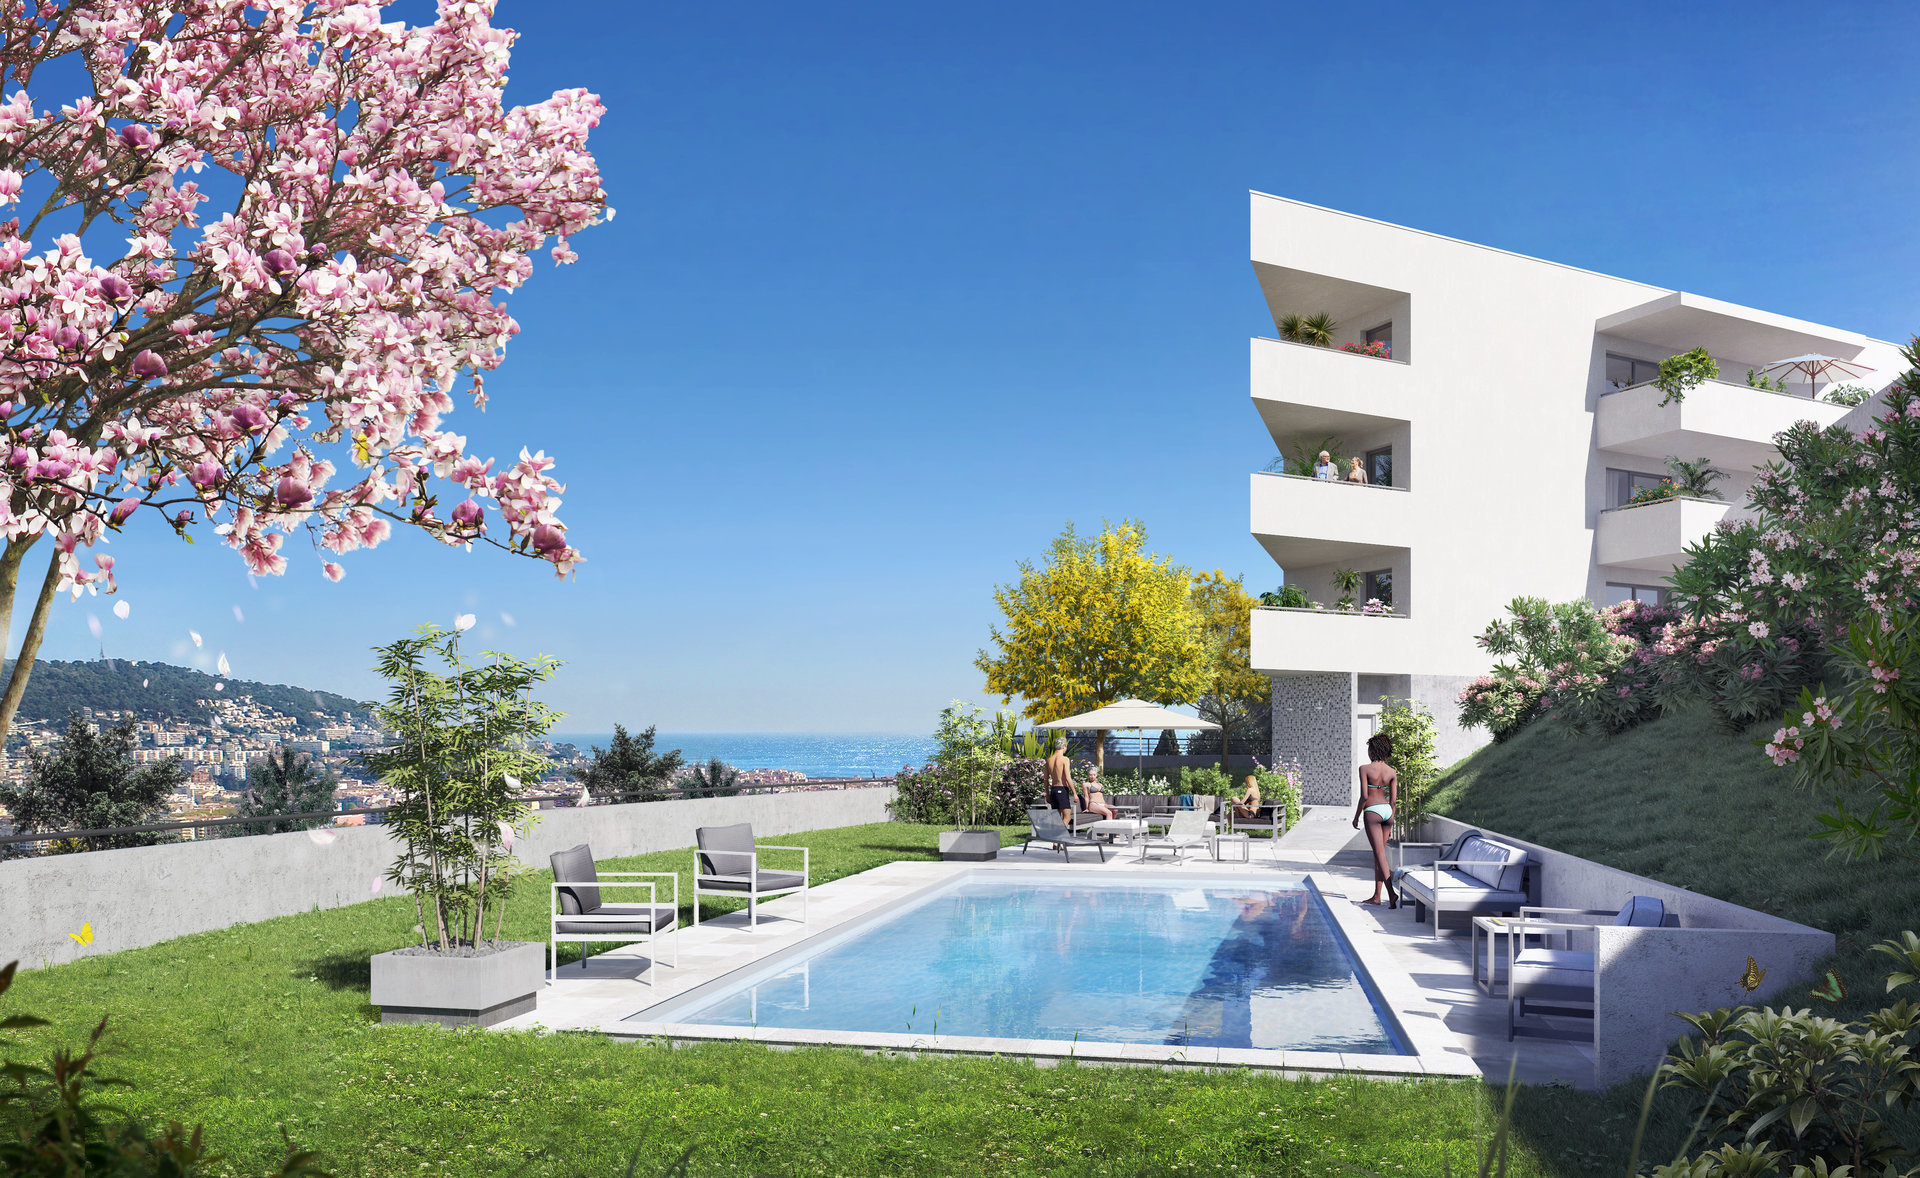 NICE - French Riviera - luxury 2 bed Apartment with terrace and garden